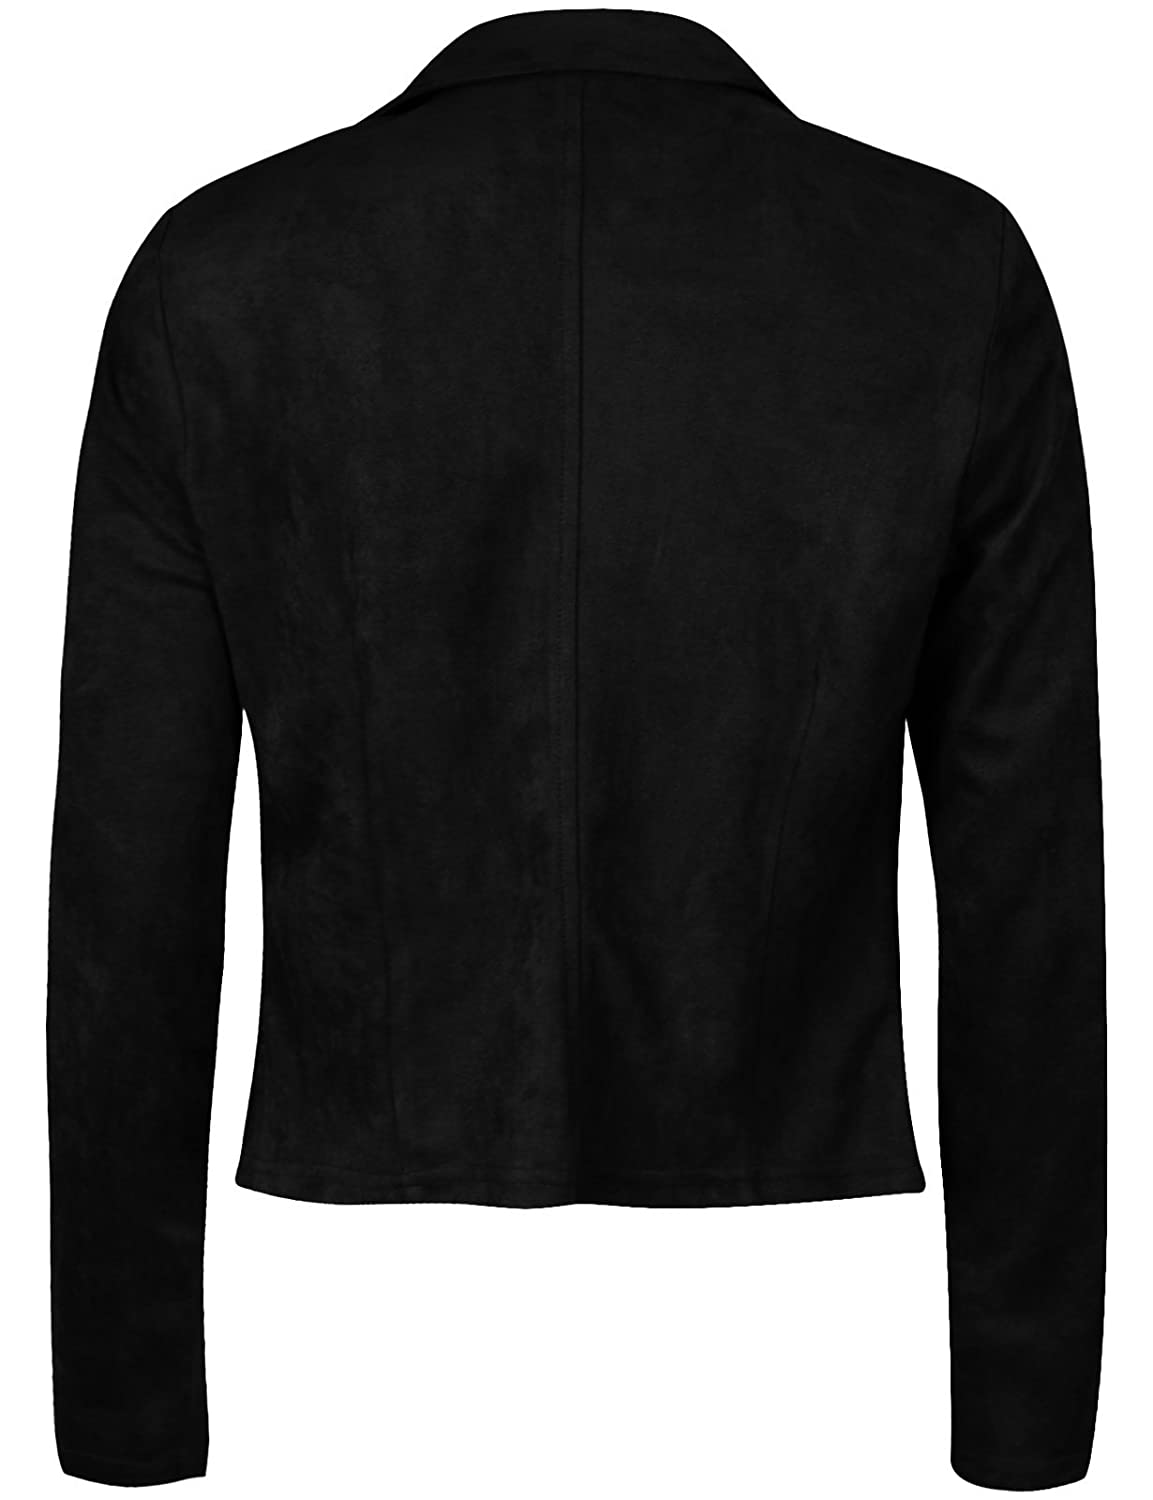 Michel Womens Slim Fit Rider Jackets Retro Lapel Zipper Bike Jacket